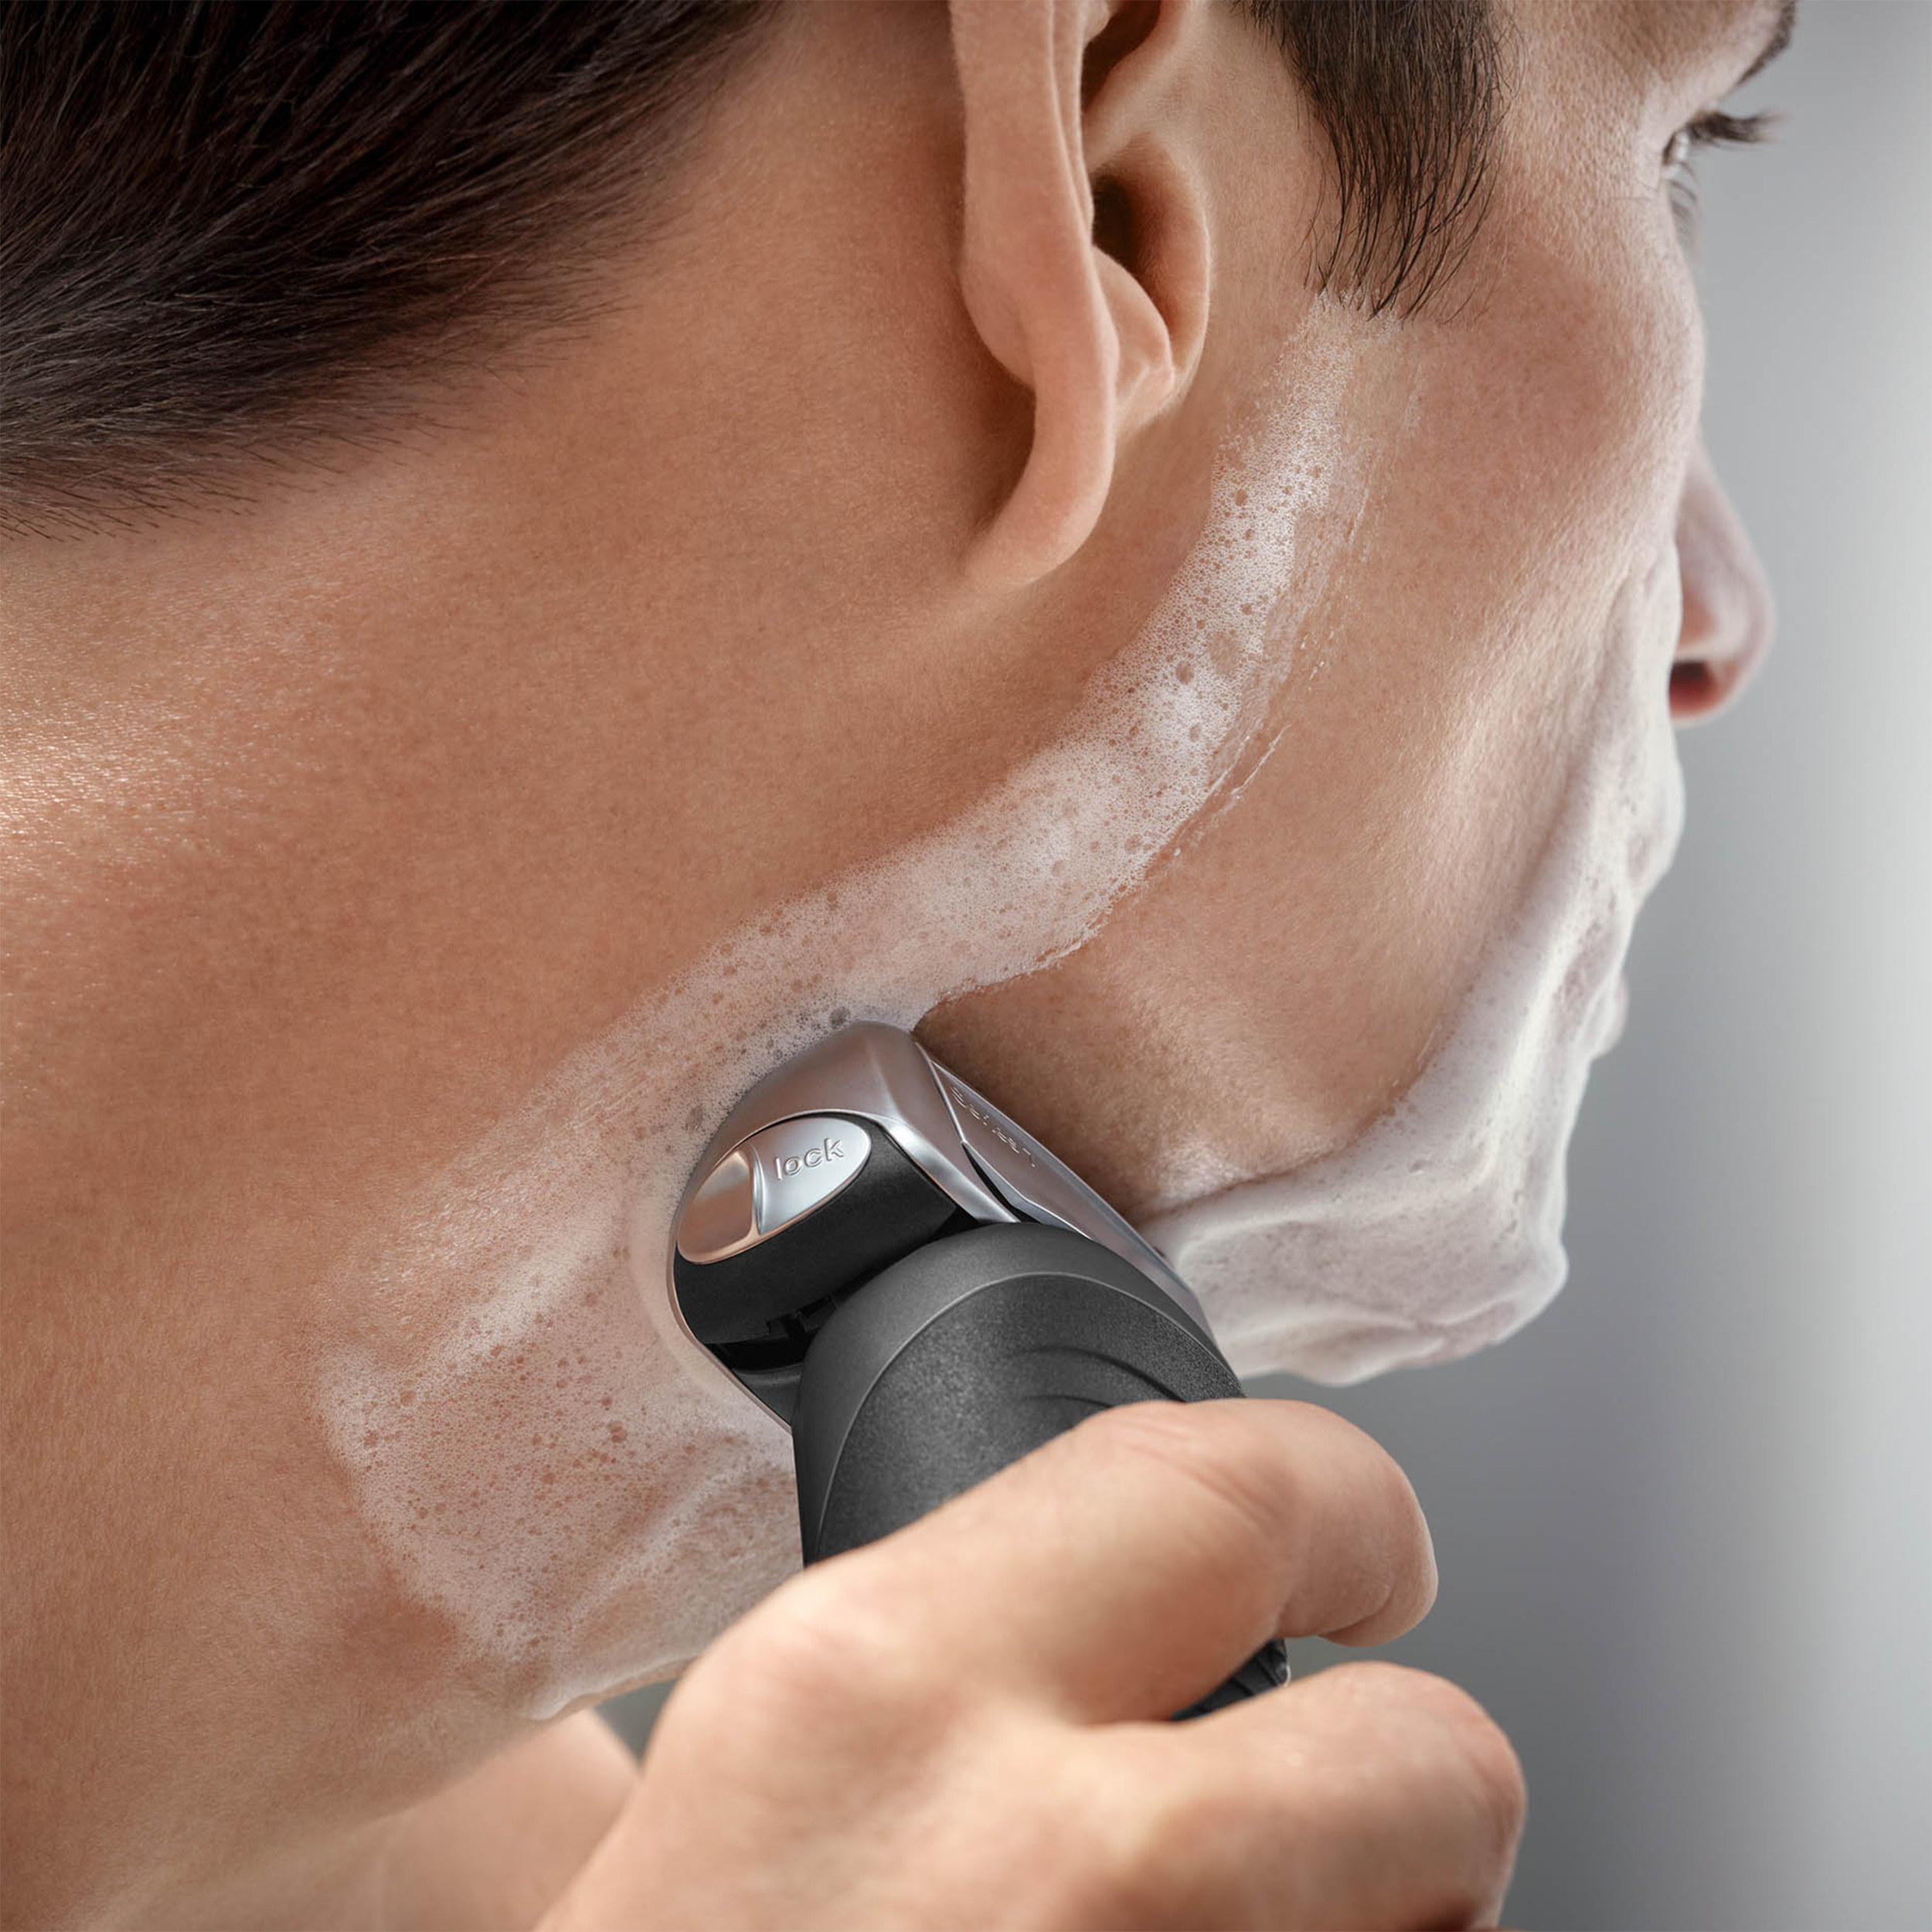 A model using the shaver on their beard